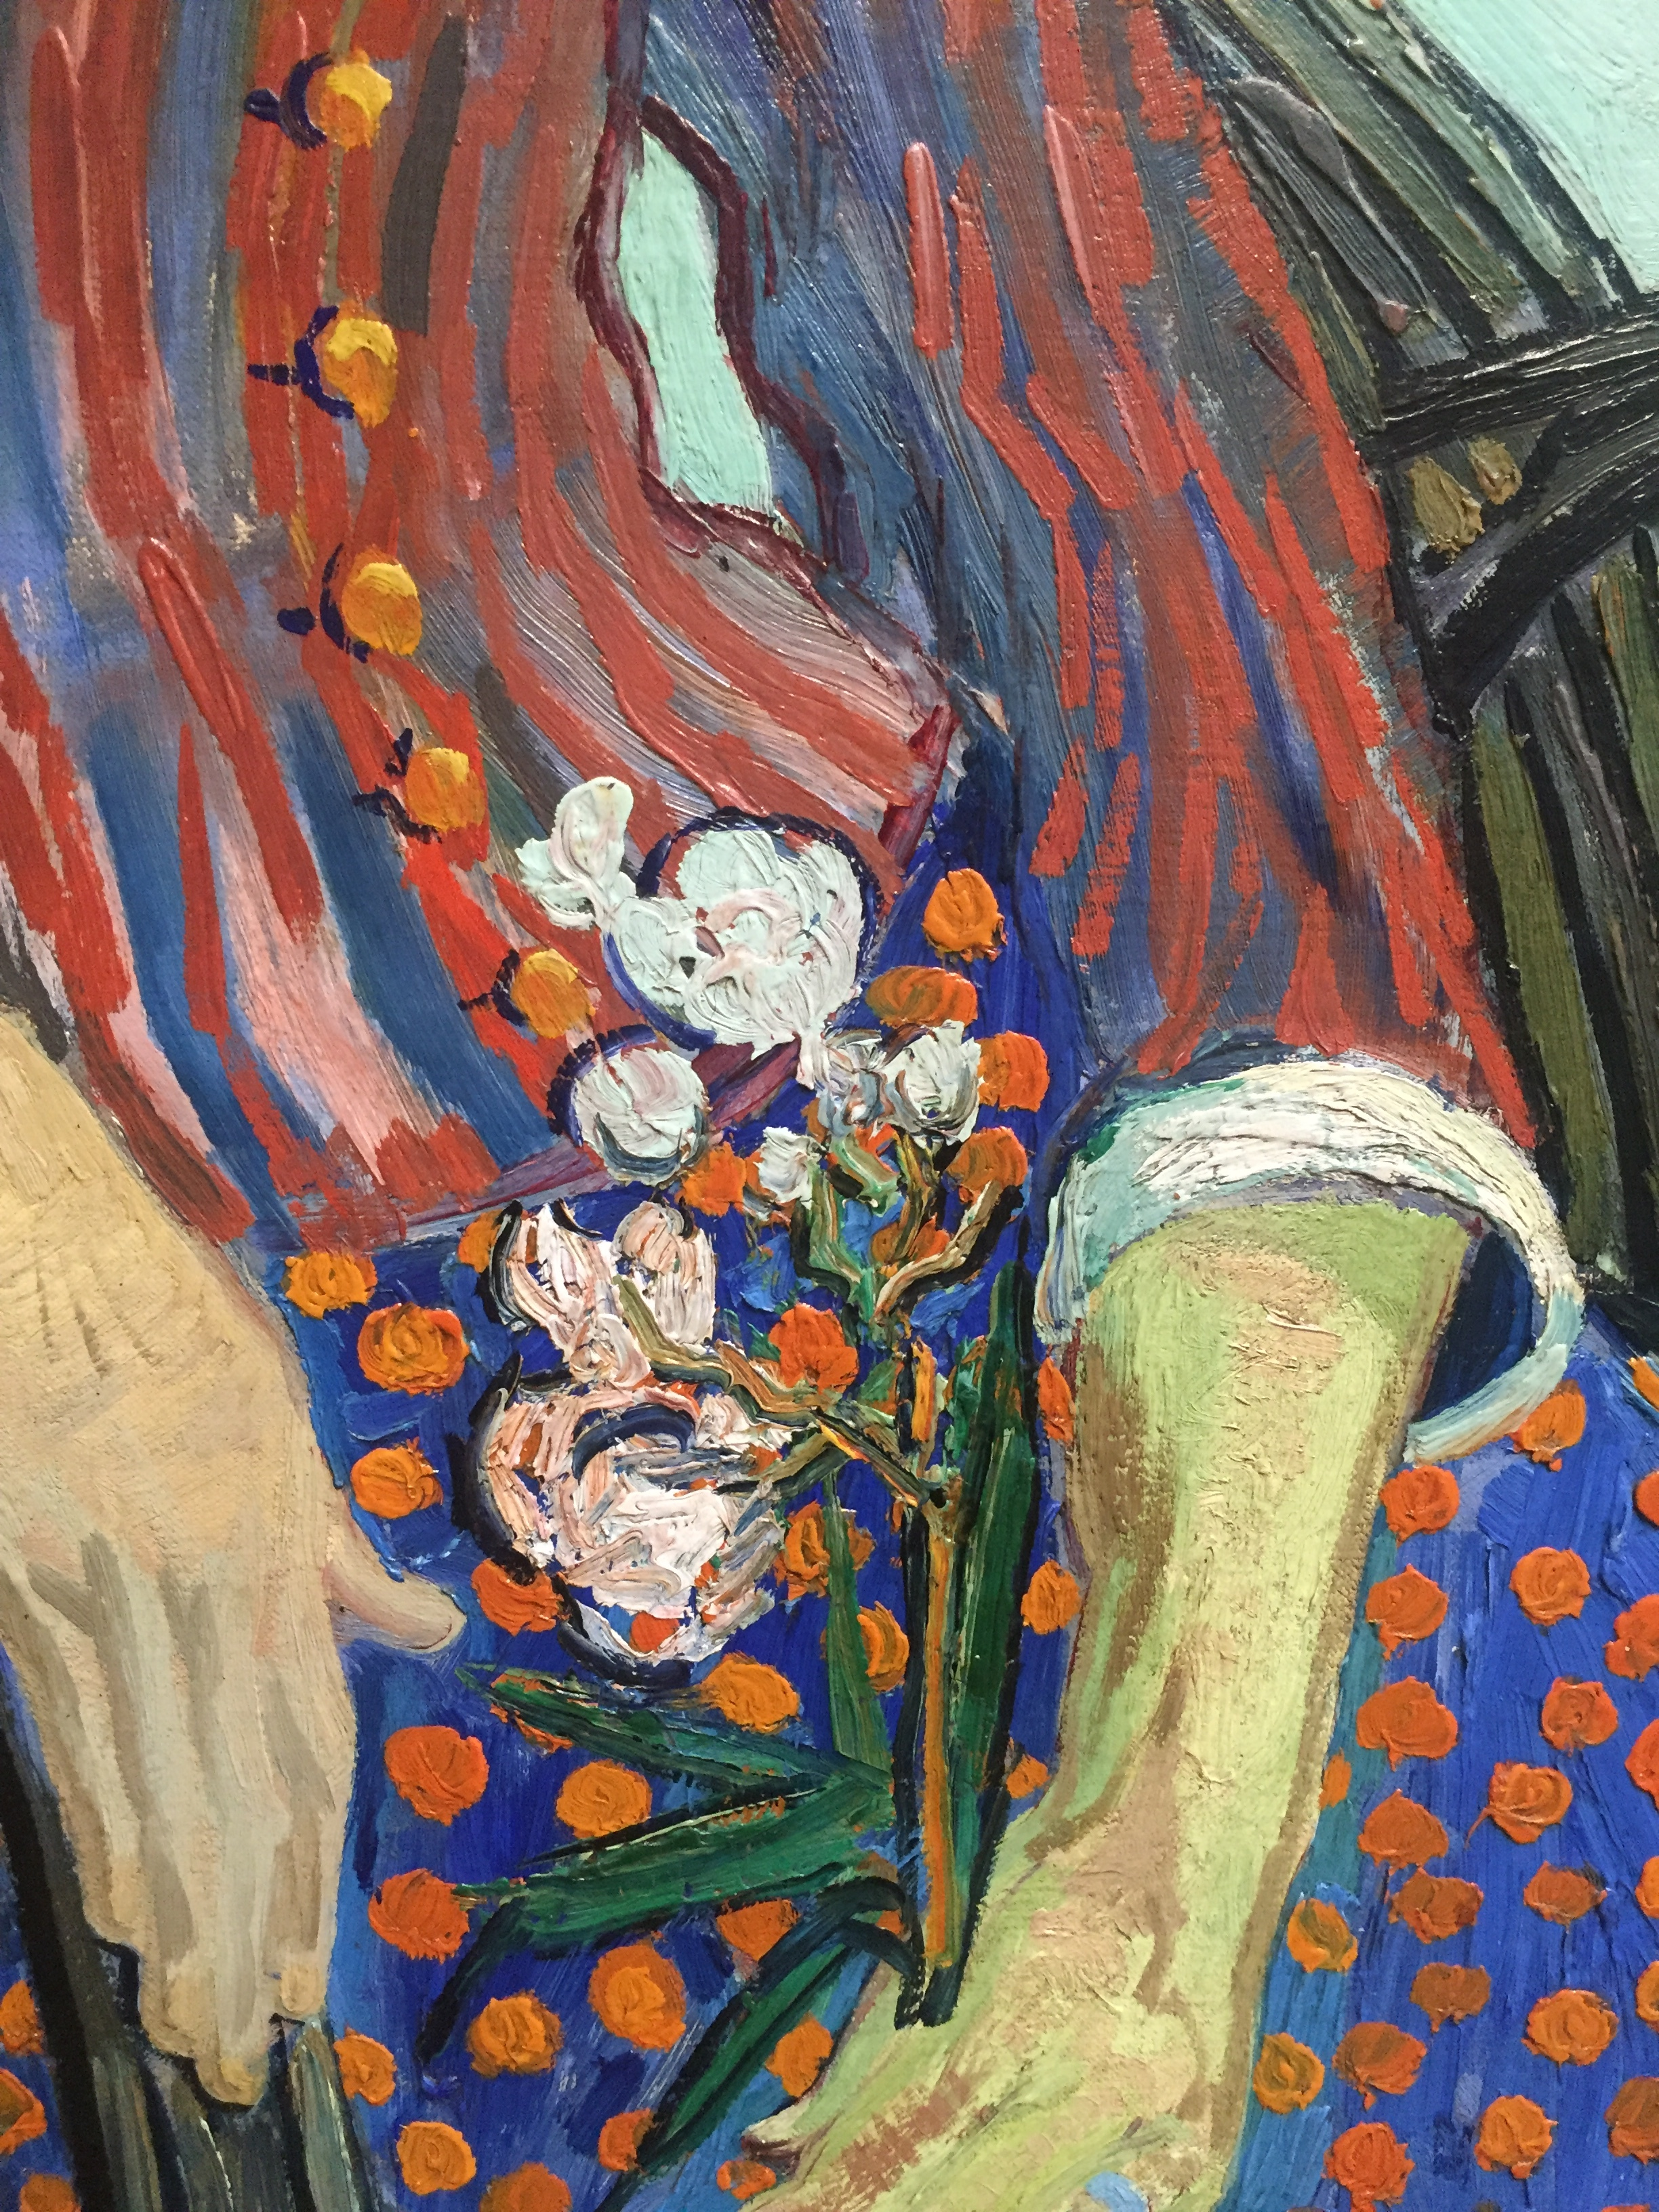 van gogh red dress flower detail.JPG